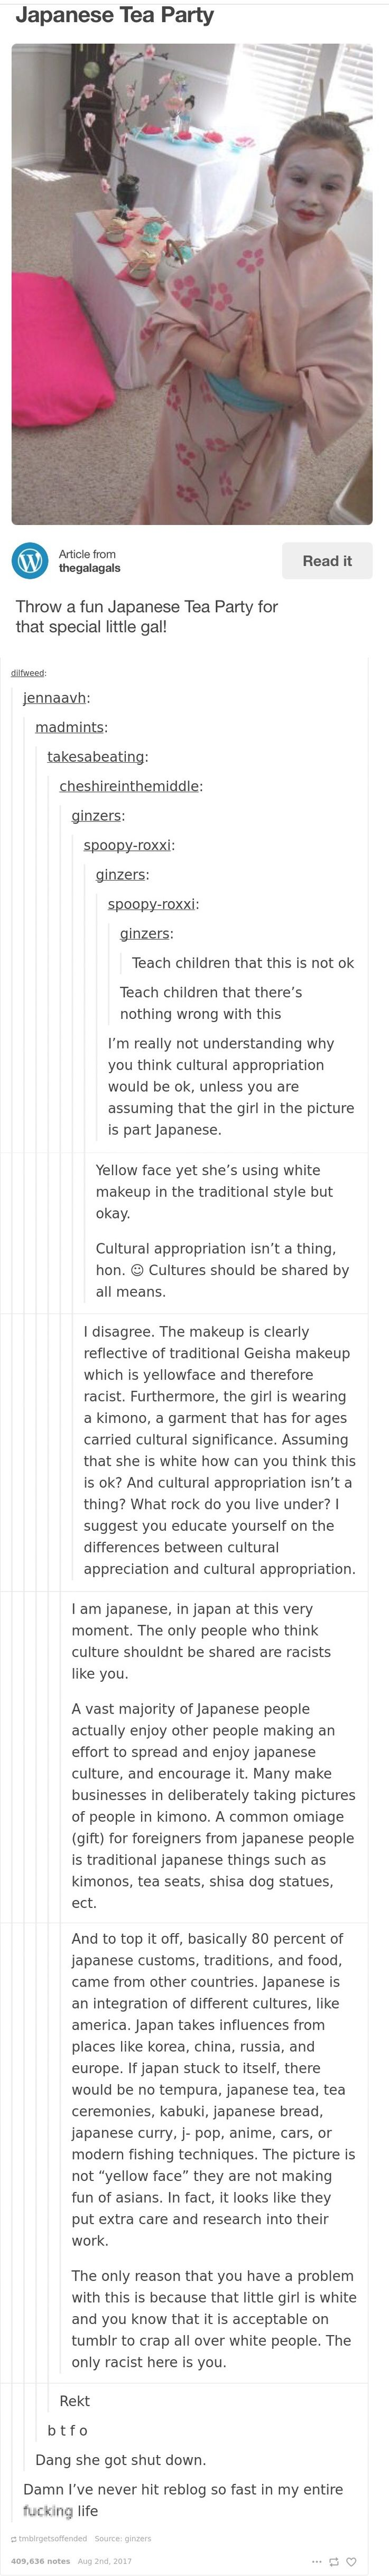 Wight Supremacist: Cultures need to be separate in order to maintain out racial purity. Wight-guilt Ridden College Student: That's horrible! Everyone knows that cultures should be separated to maintain the racial purity of other cultures. Other Cultures: Hey, someone likes out stuff! Cool!